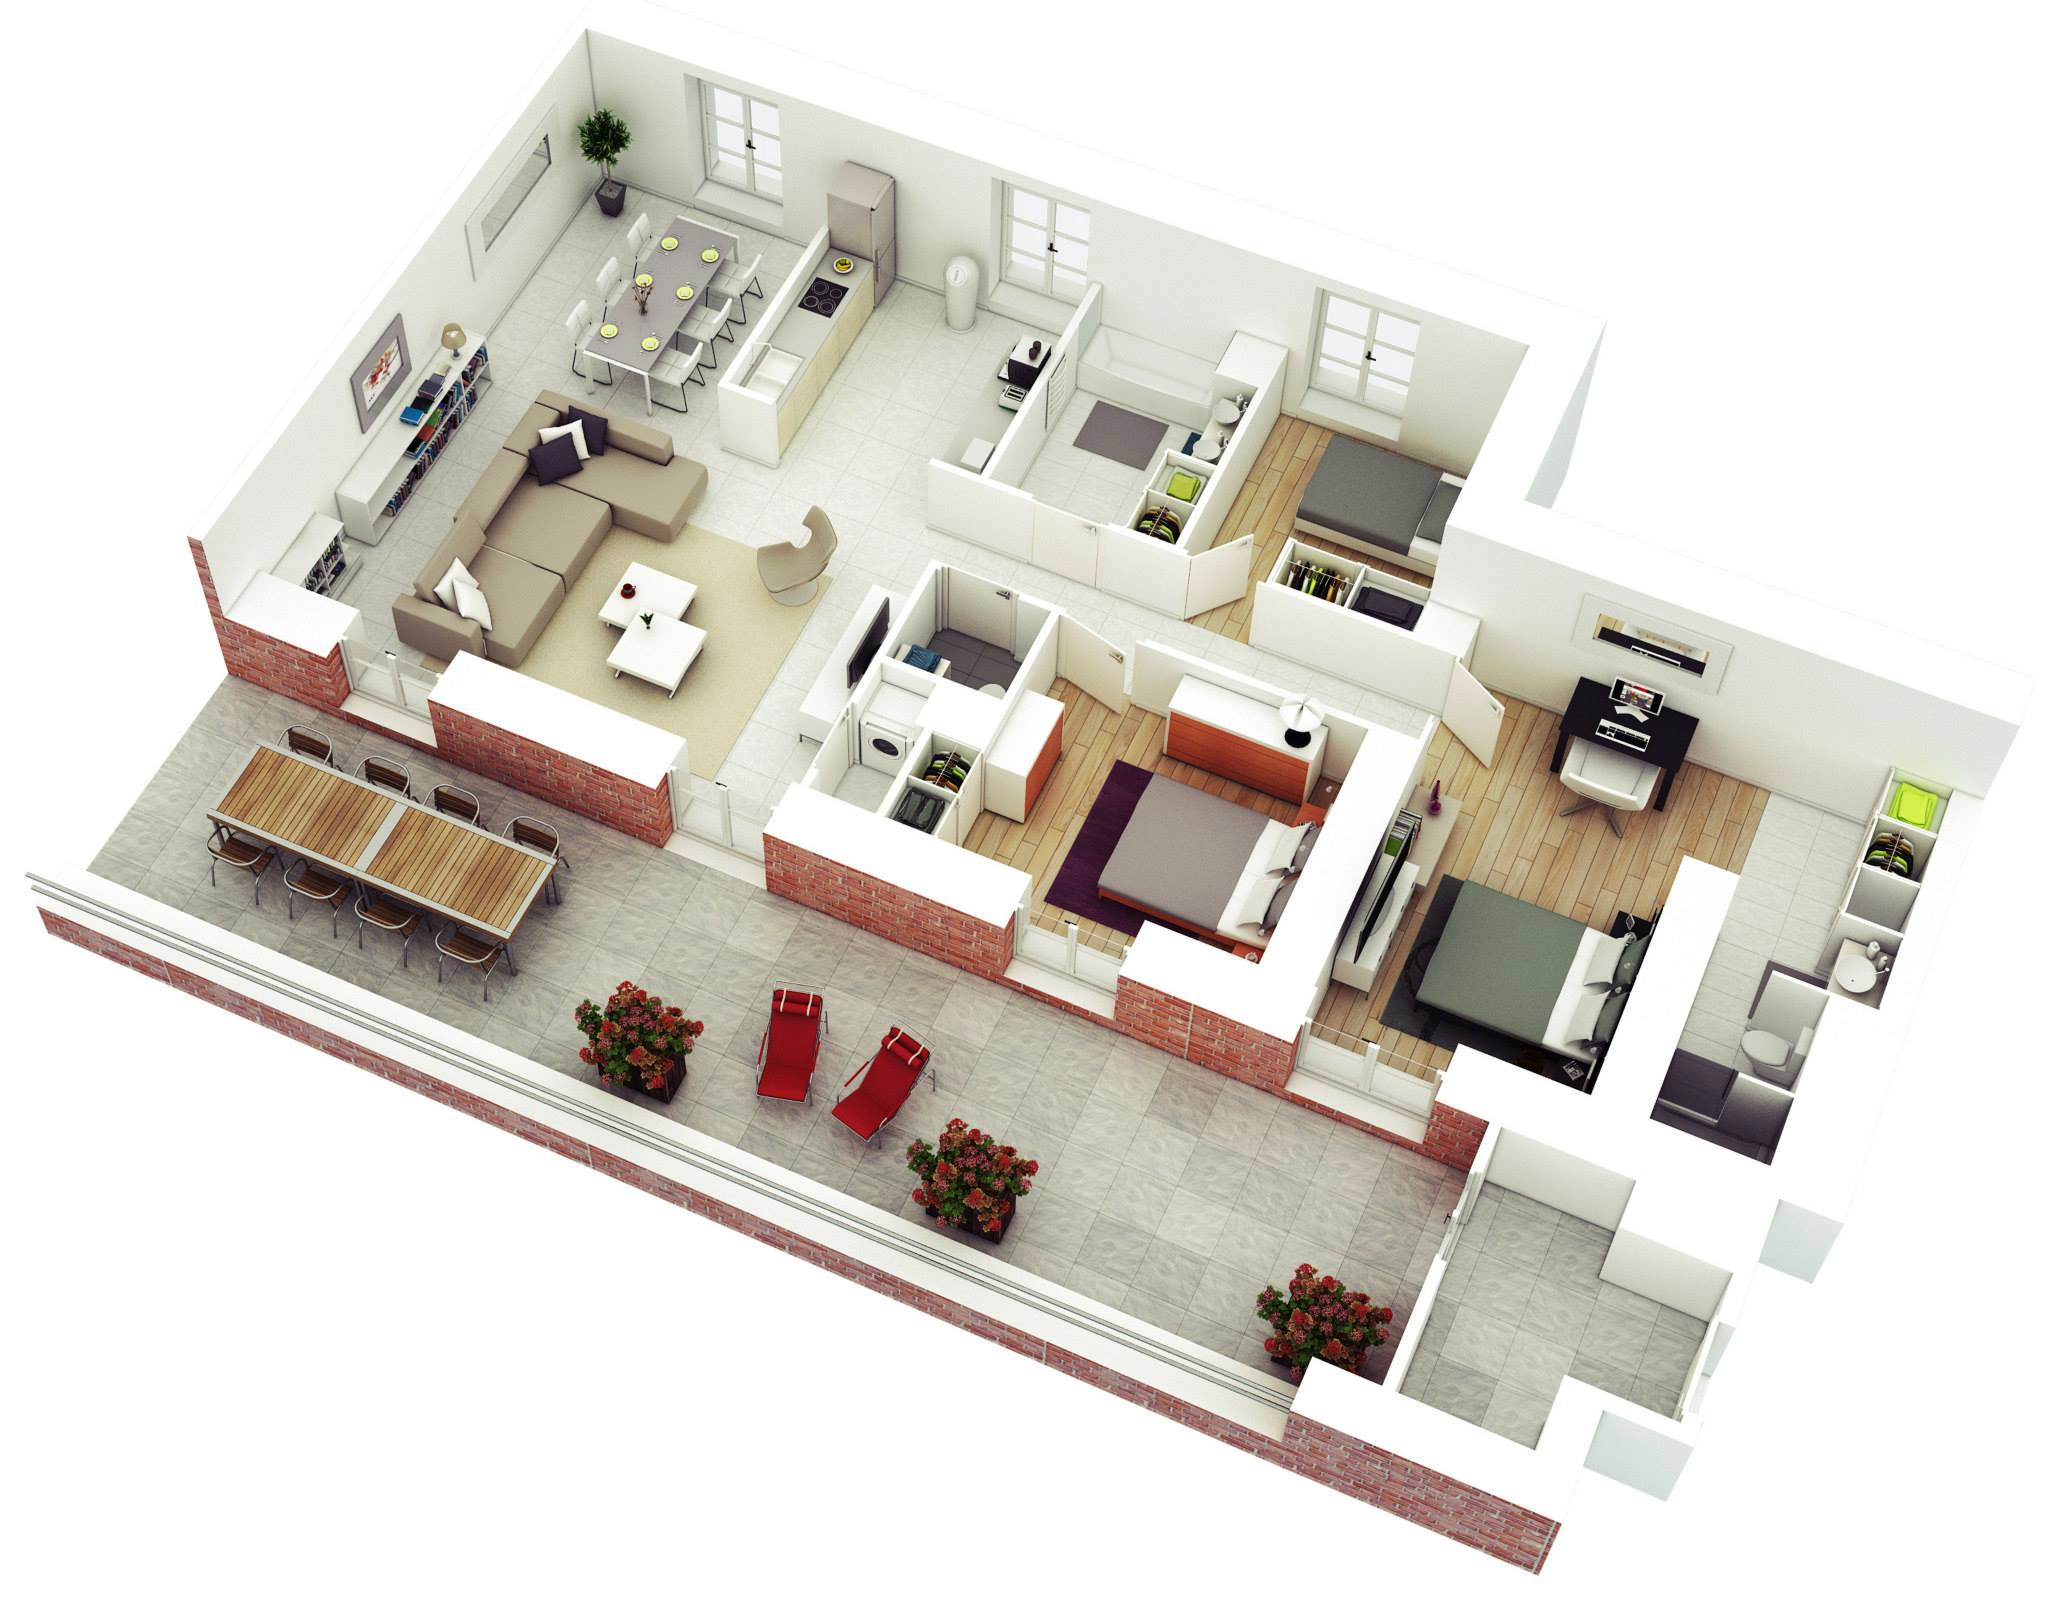 Home Design Plans 3D Interior Glamorous 25 More 3 Bedroom 3D Floor Plans Design Decoration